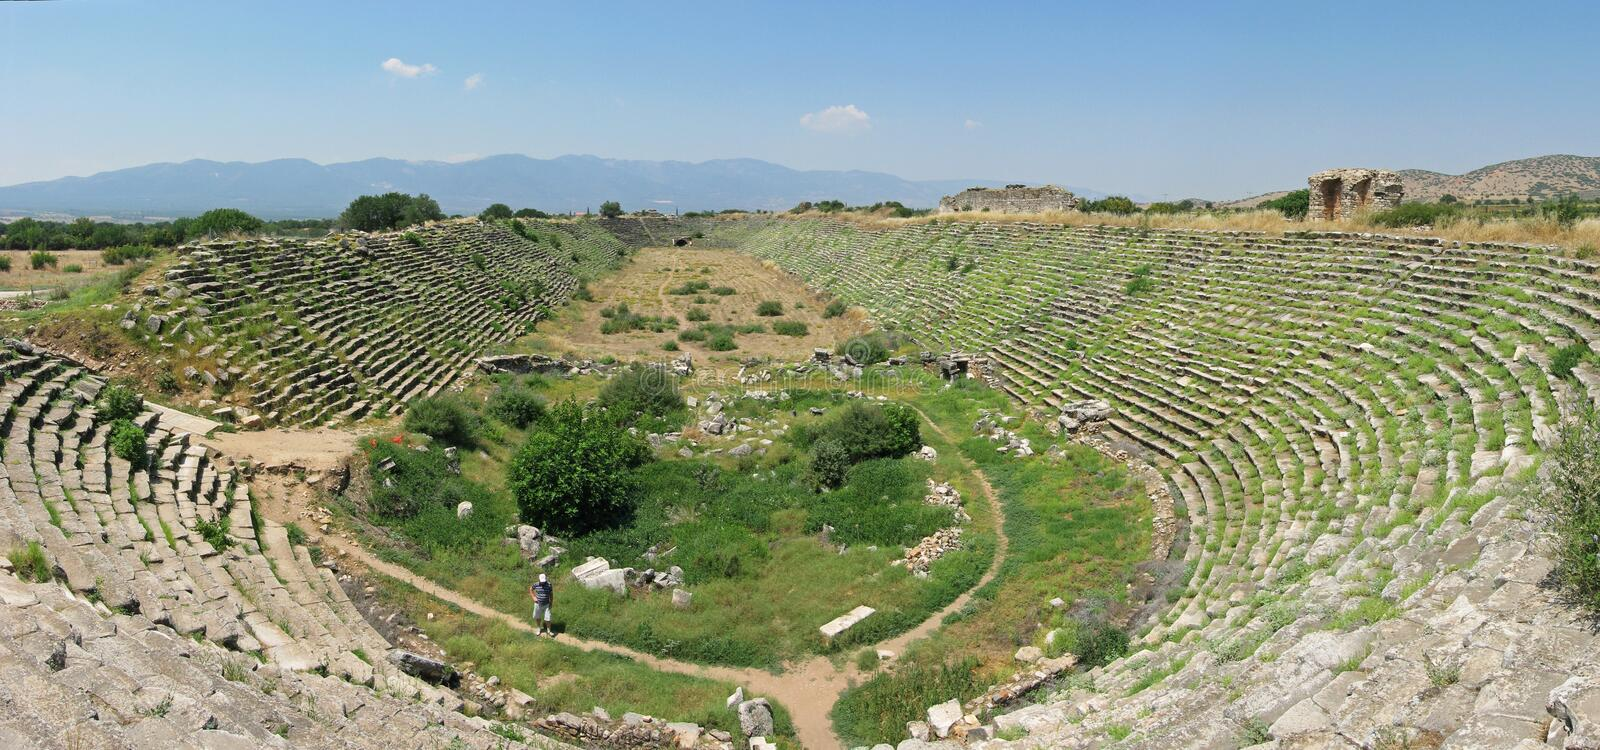 Stadion in oude stad Aphrodisias stock afbeelding